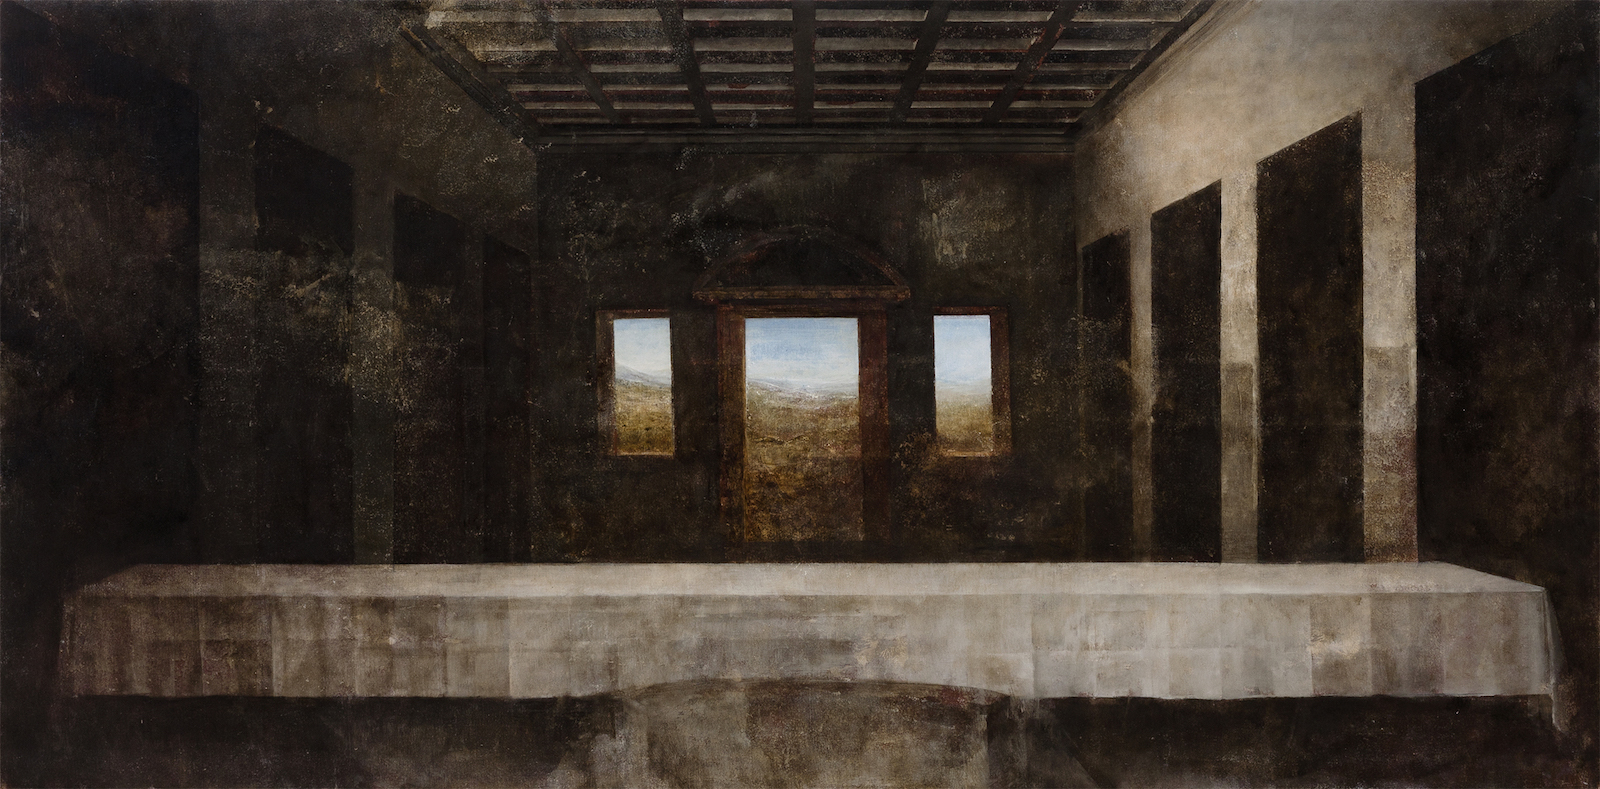 Lewben Art Foundation (Lithuania)Patricija Jurkšaitytė. Leonardo da Vinci. The Last Supper, 2014